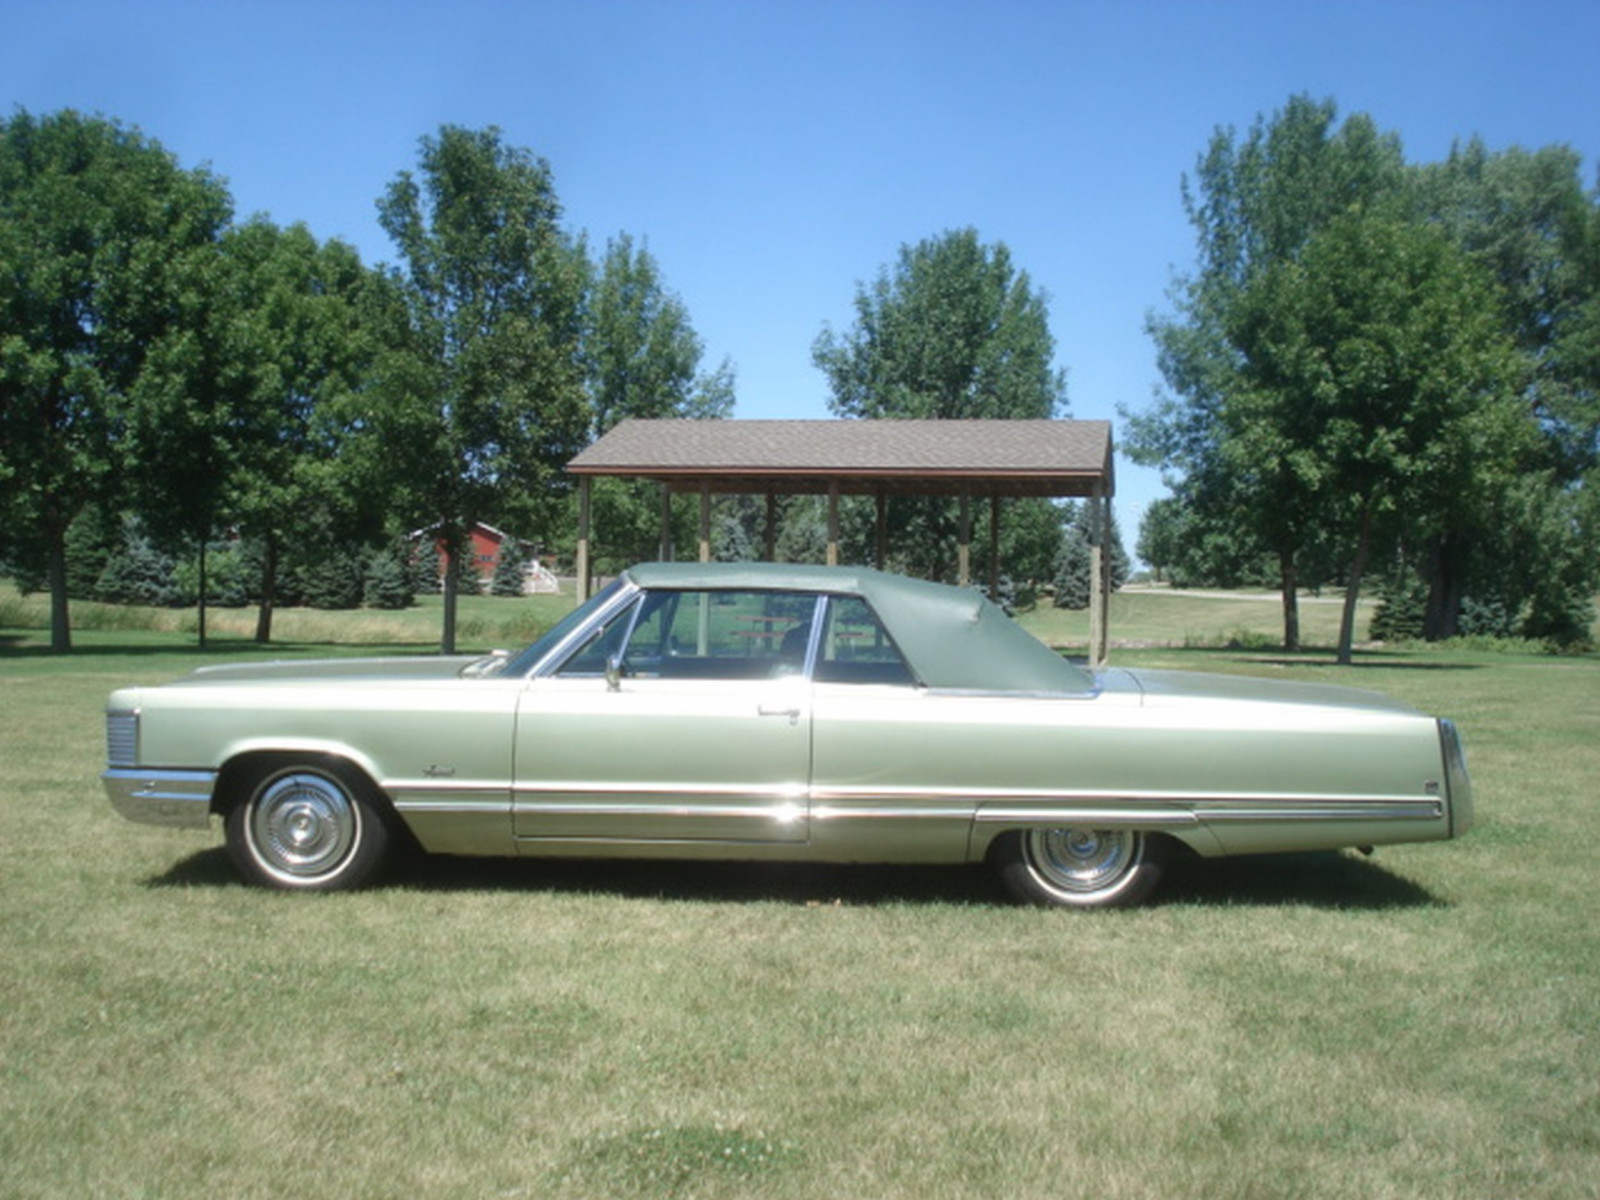 1968 Chrysler Imperial Crown Convertible - Image 9